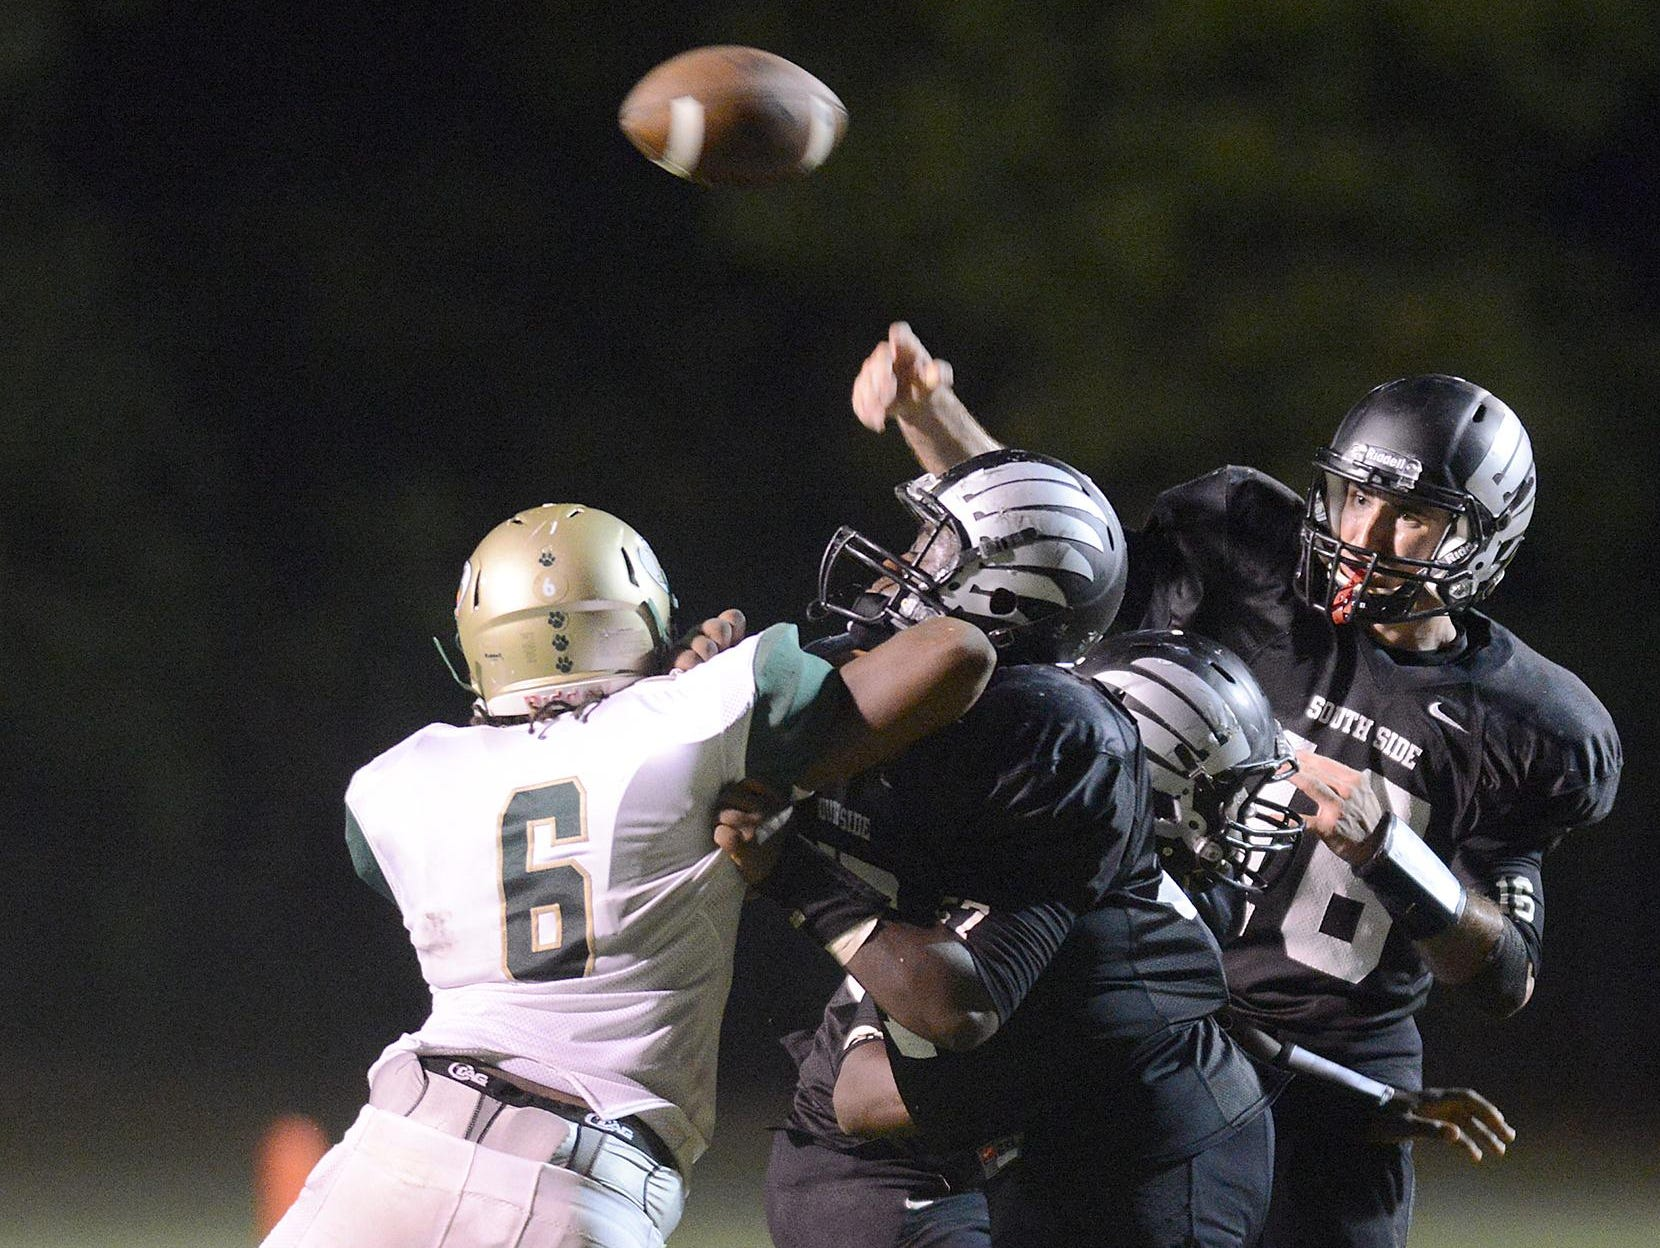 South Side's Cade Willingham (16) passes against Bolivar at South Side on Friday.